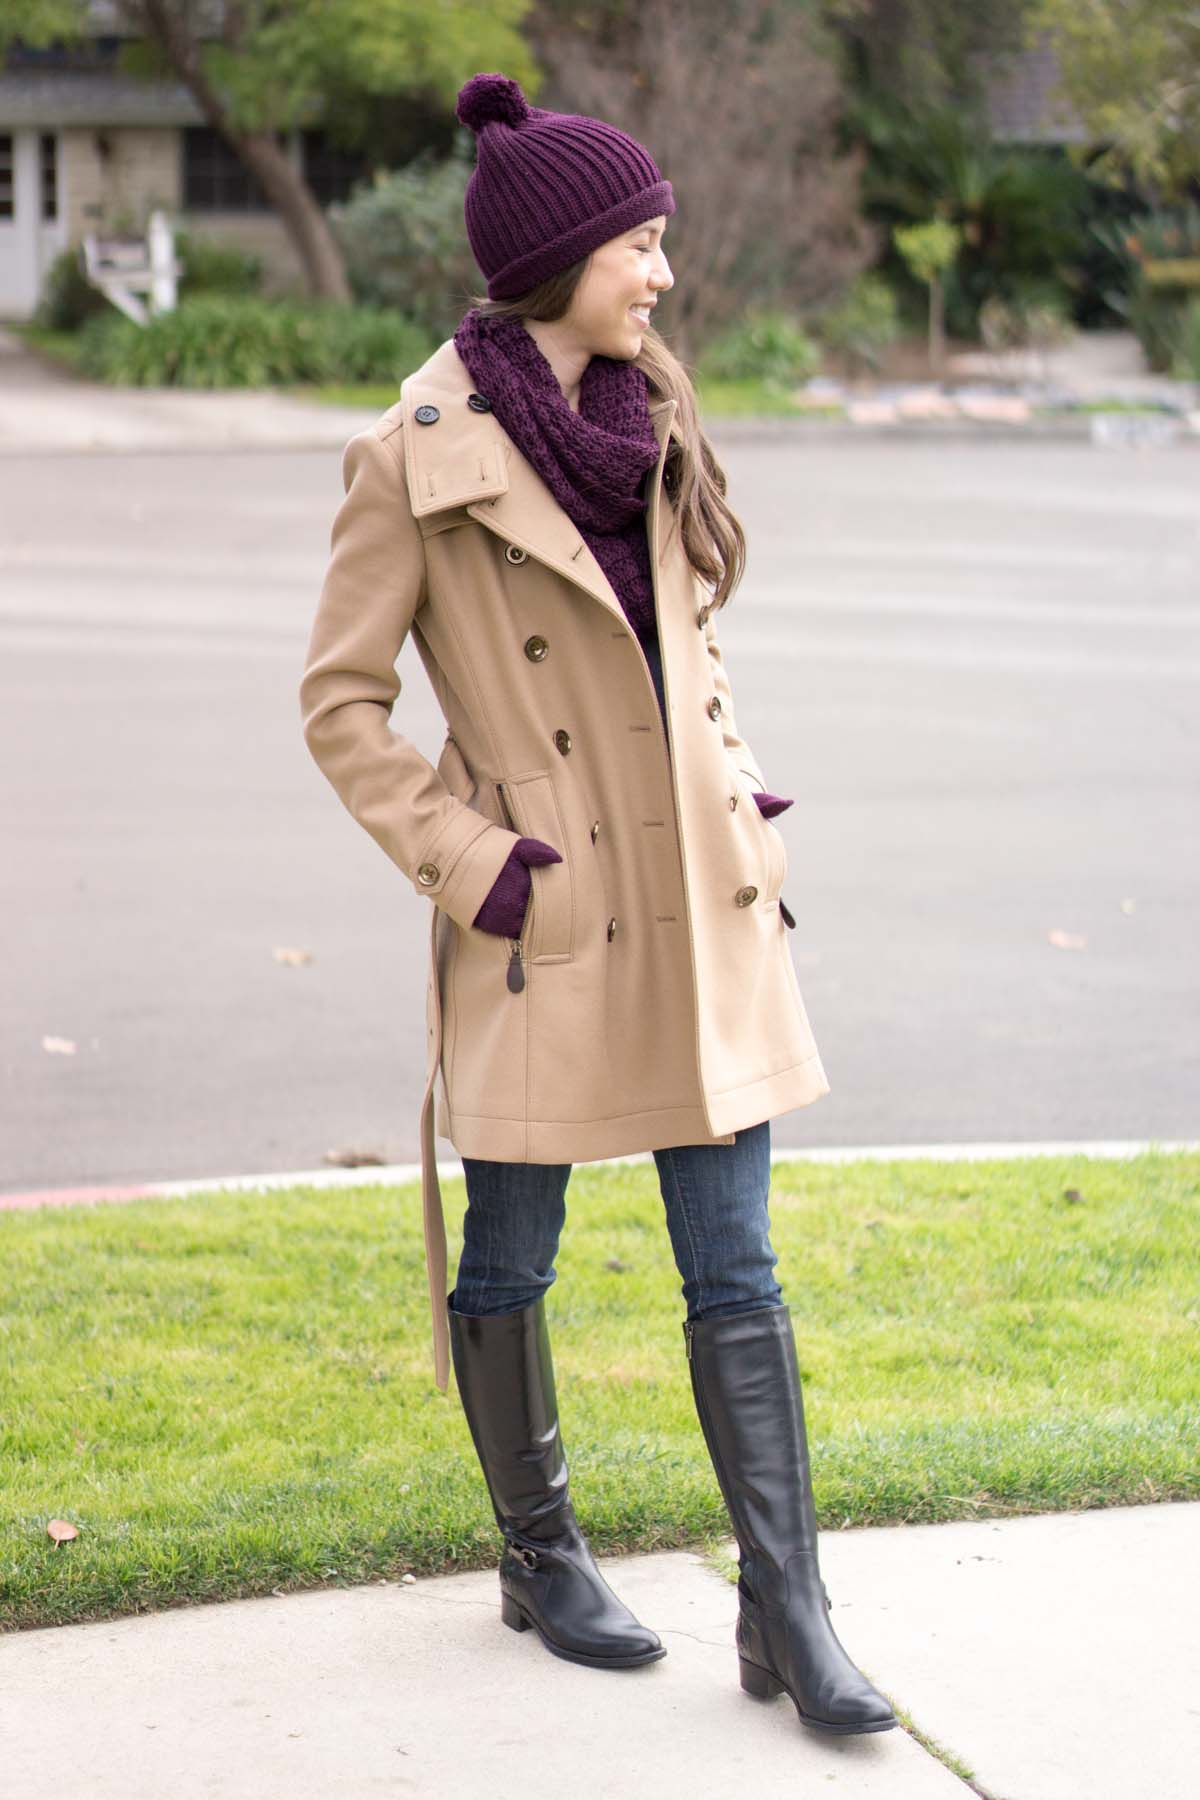 The Company Store Review | Winter Accessories | Baby Alpaca Waffle Knit Hat Gloves Scarf | Burberry Daylesmoore Wool Coat | Ann Taylor Jacket